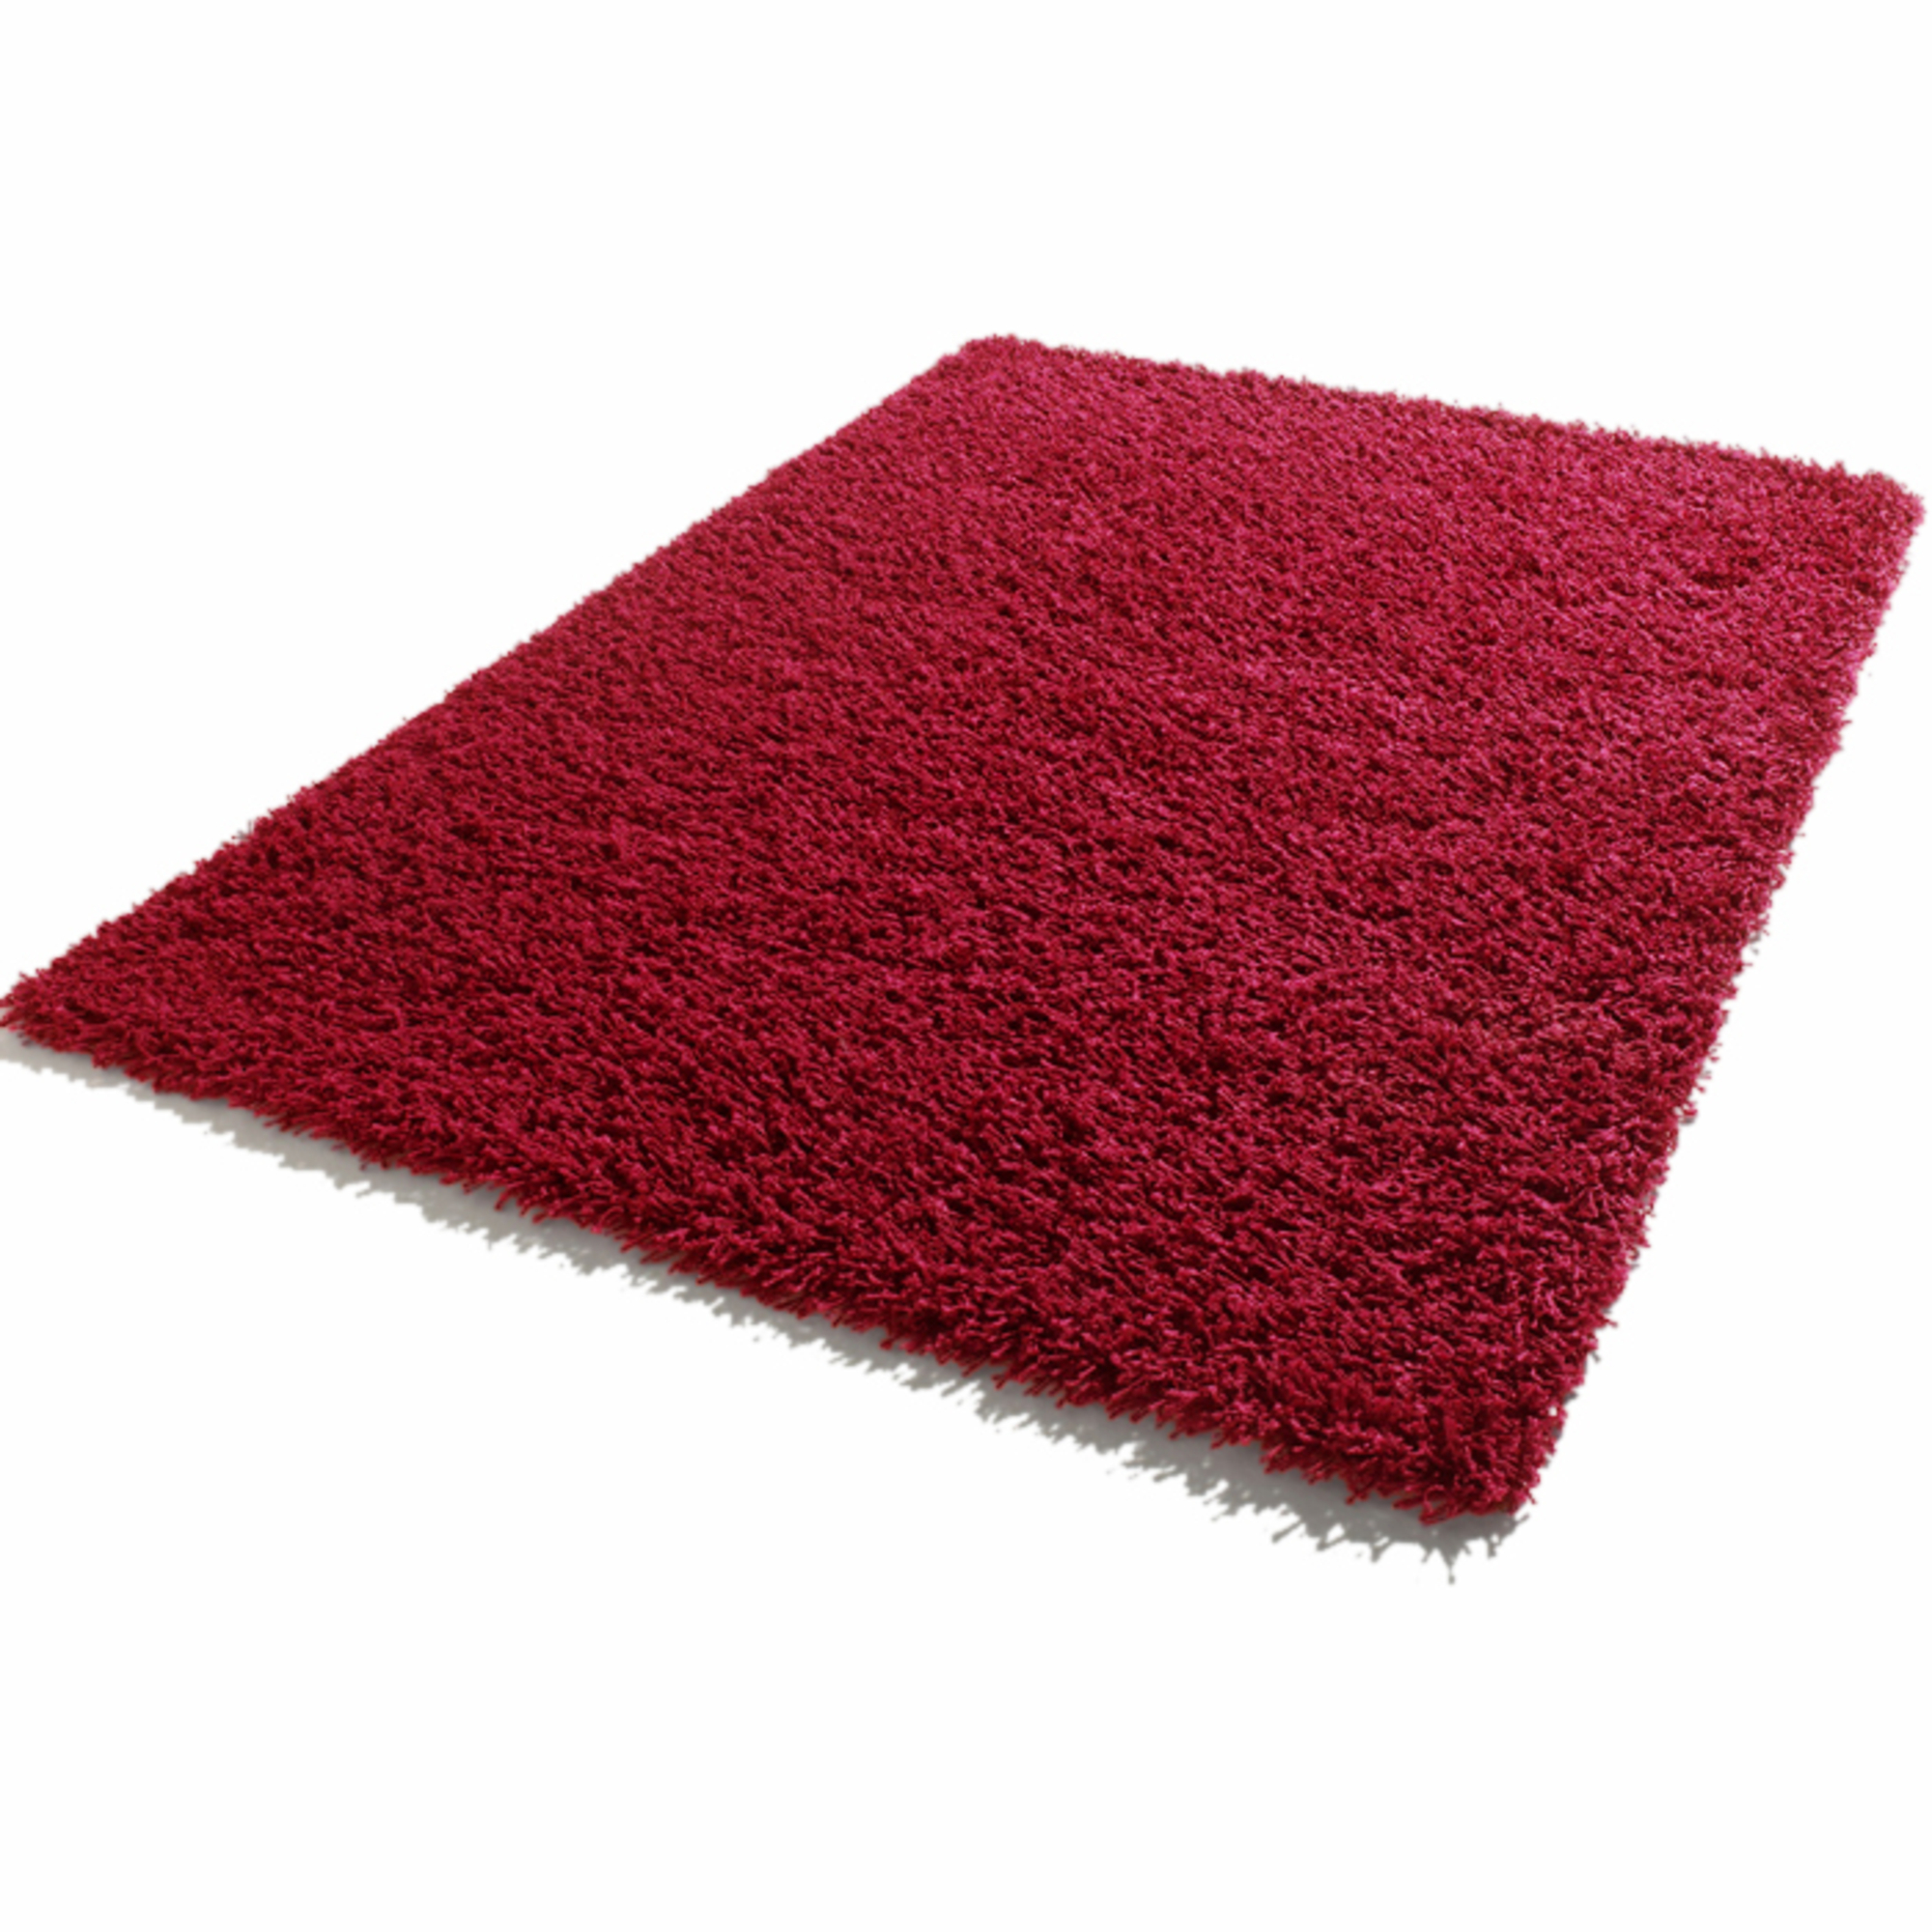 tapis longues m ches 120 x 170 cm shaggy rouge frais de traitement de commande offerts. Black Bedroom Furniture Sets. Home Design Ideas